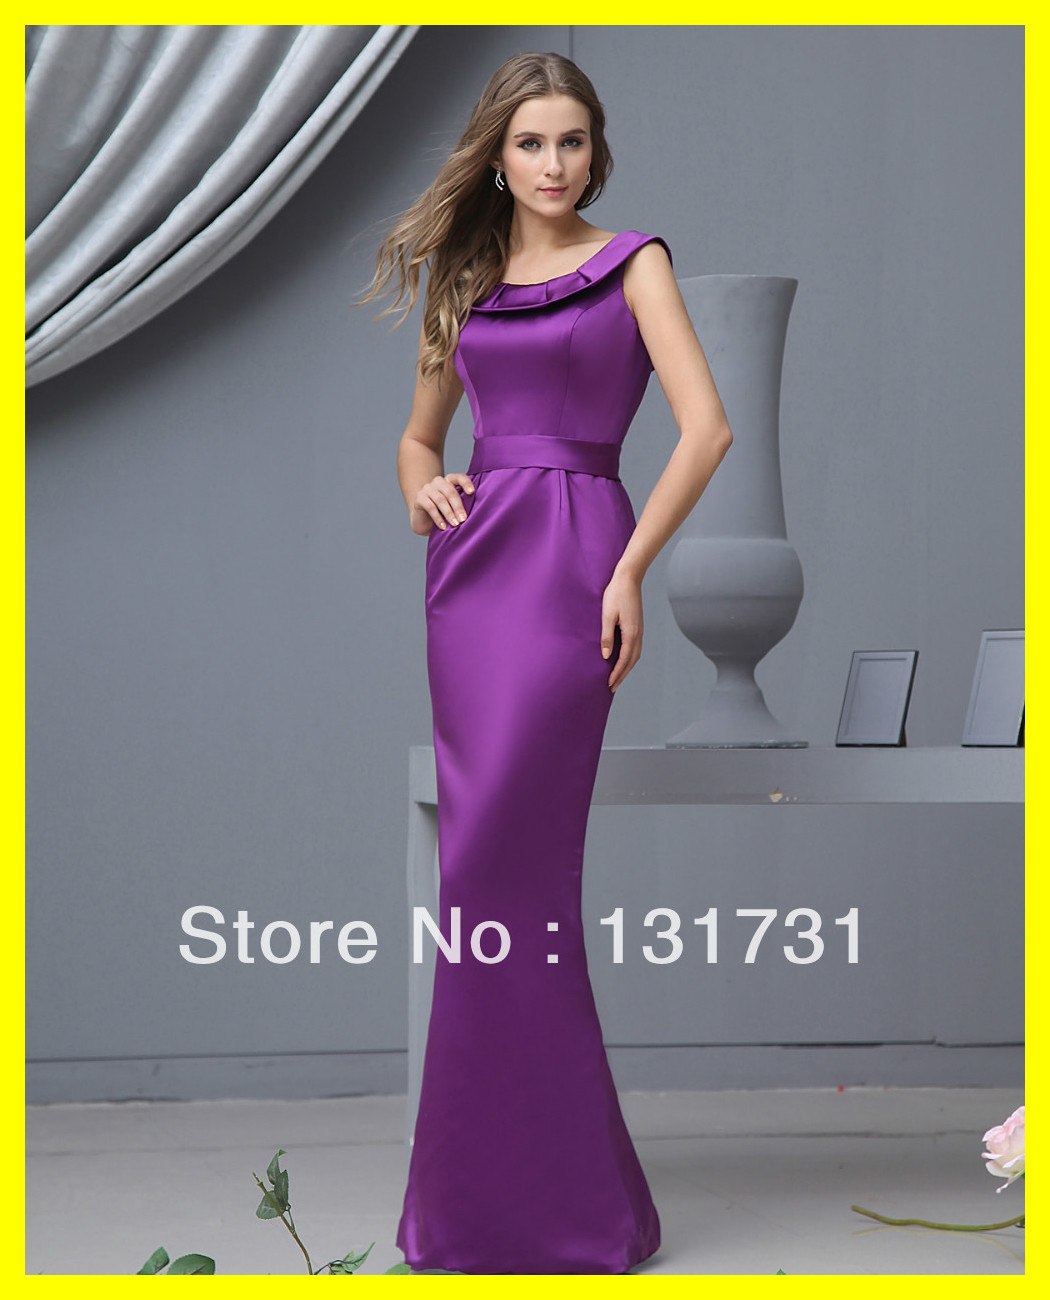 Sell Used Bridesmaid Dresses Online Gallery - Braidsmaid Dress ...